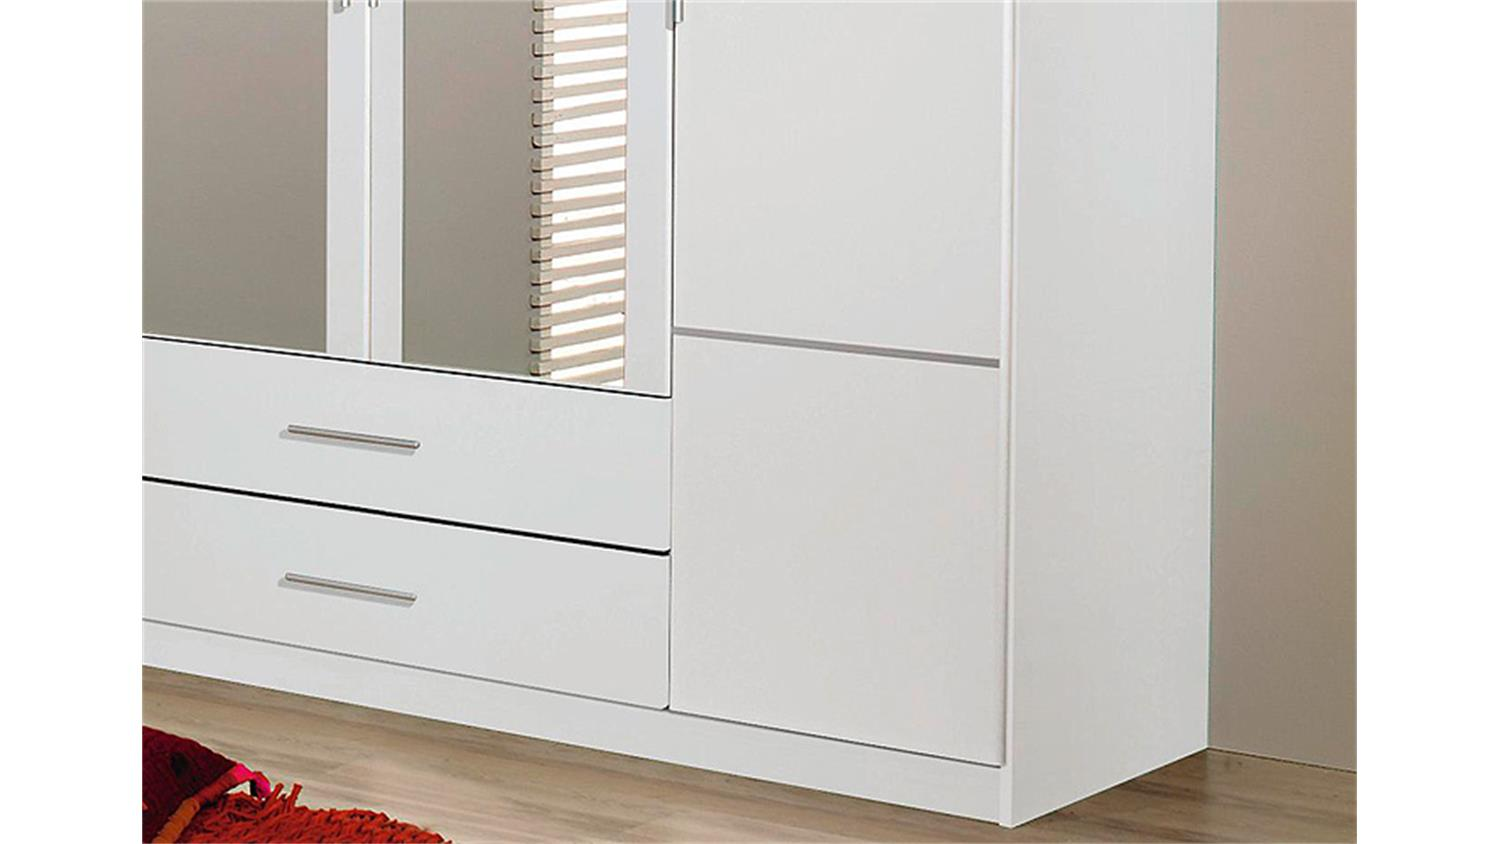 kleiderschrank micro schlafzimmer schrank 4 t rig alpinwei mit spiegel. Black Bedroom Furniture Sets. Home Design Ideas